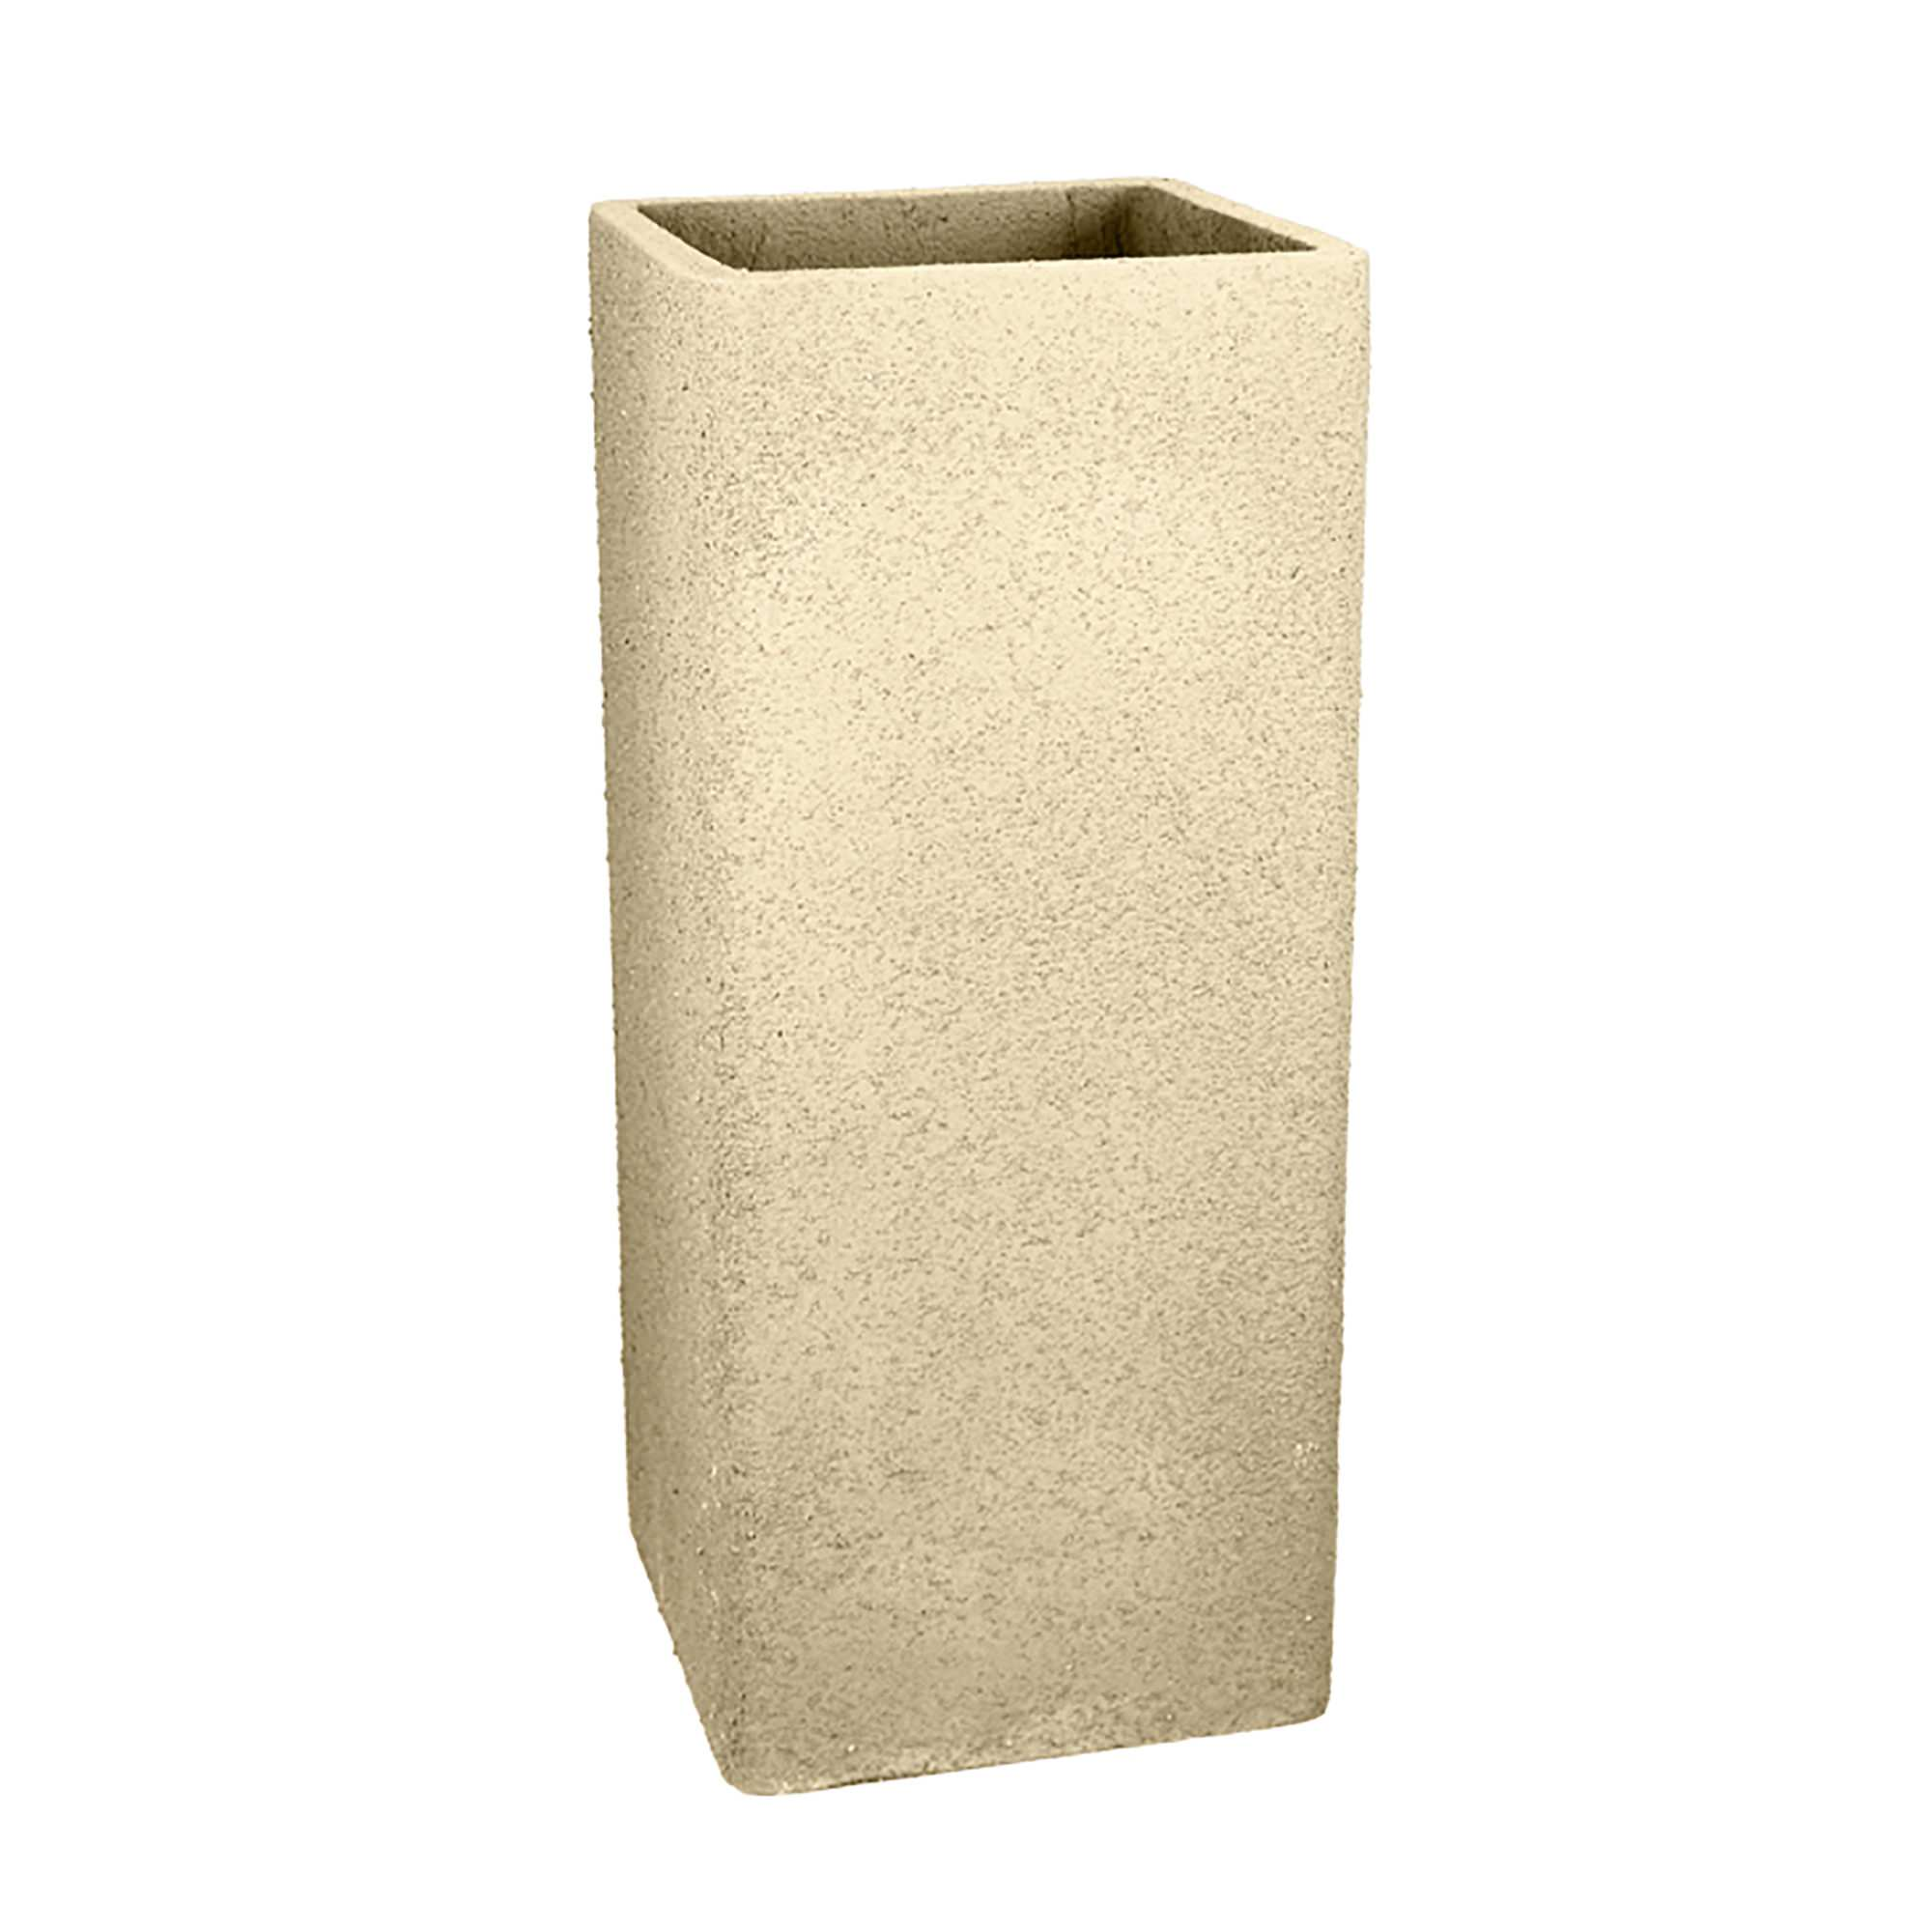 36 In Tall Square Fiberclay Outdoor Patio Planter Pot Available Cream Grey Or Anthracite